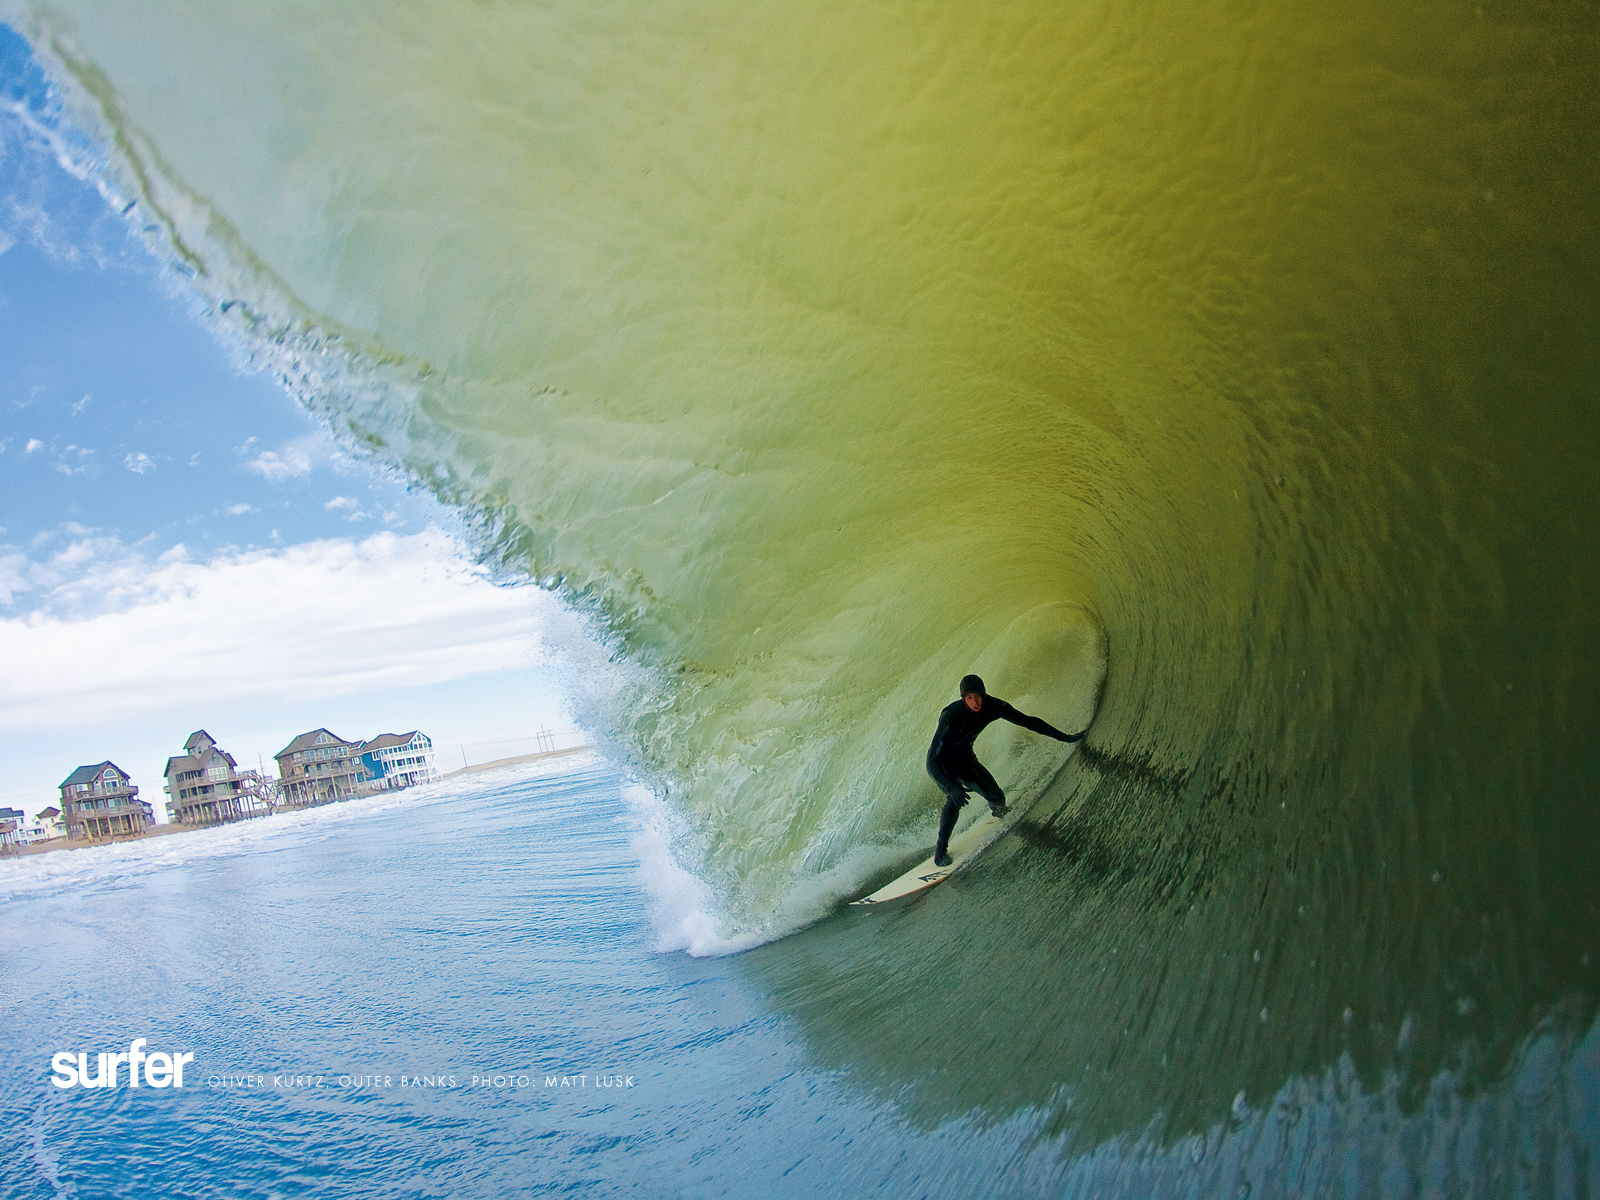 surf wallpaper 1600x1200 610x457 Surfer Magazine Surfing Wallpapers 1600x1200